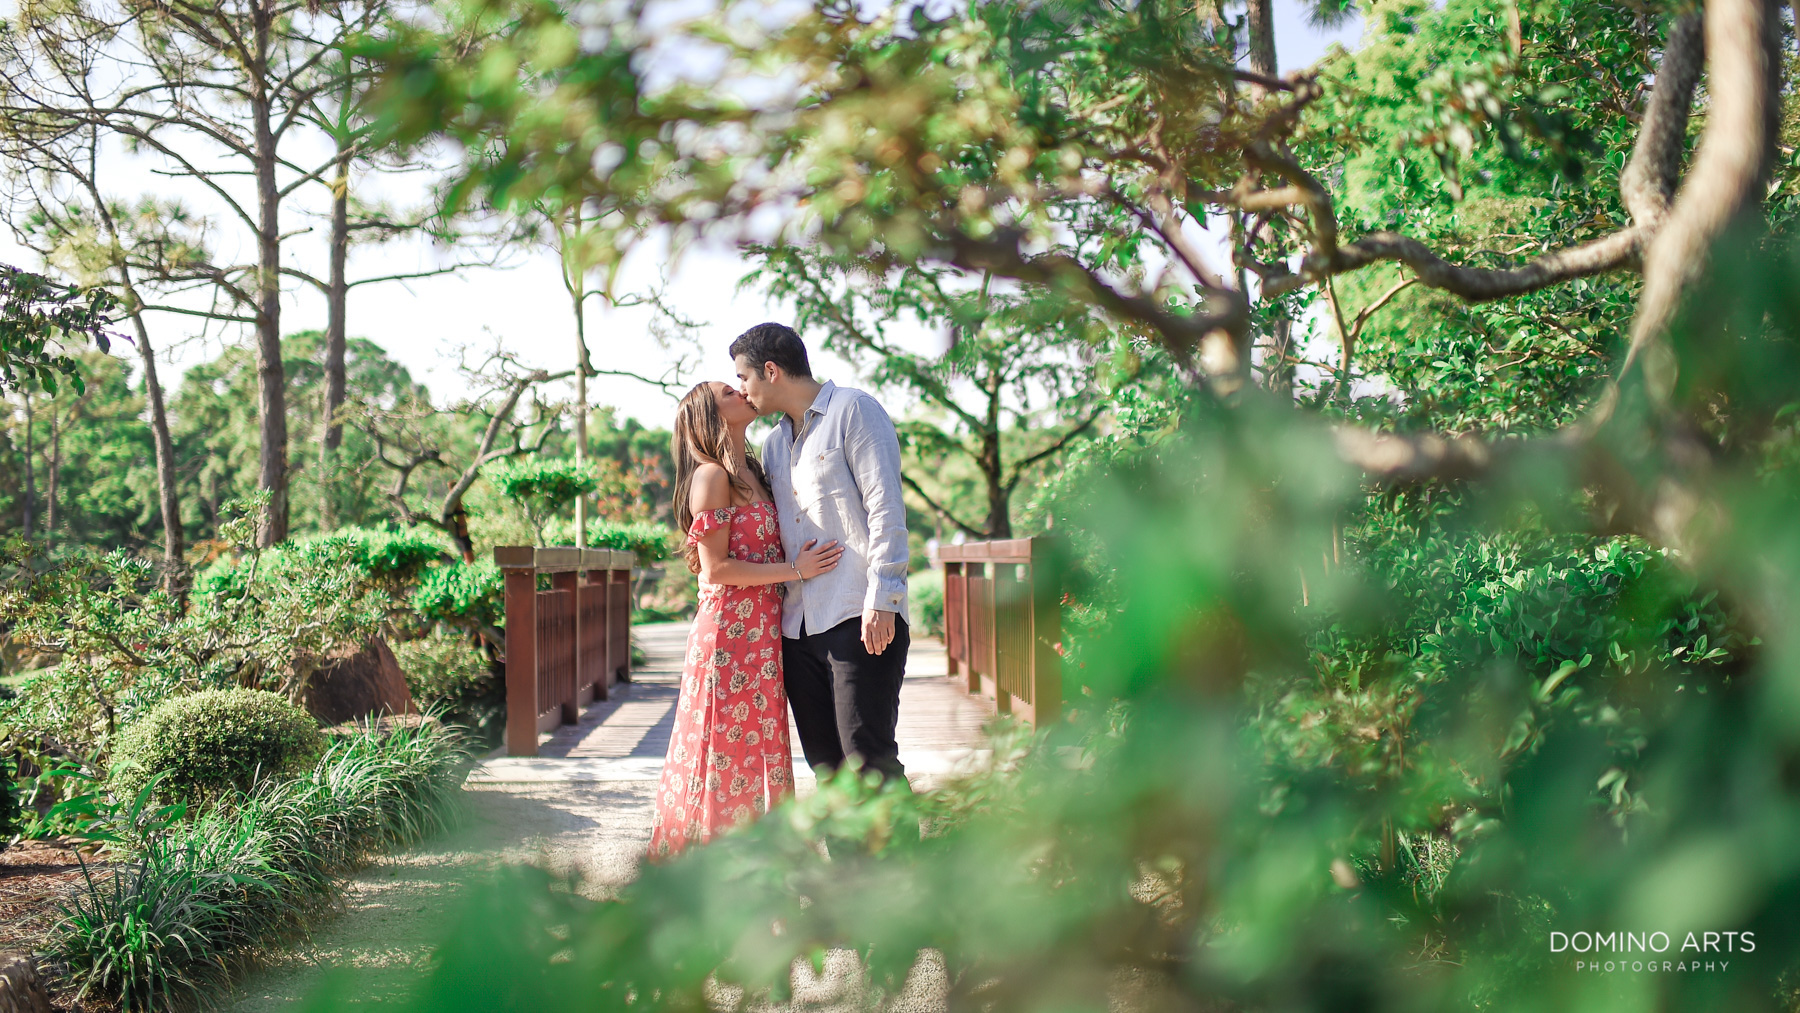 Romantic Outdoor Engagement Photography at Morikami Museum and Japanese Gardens